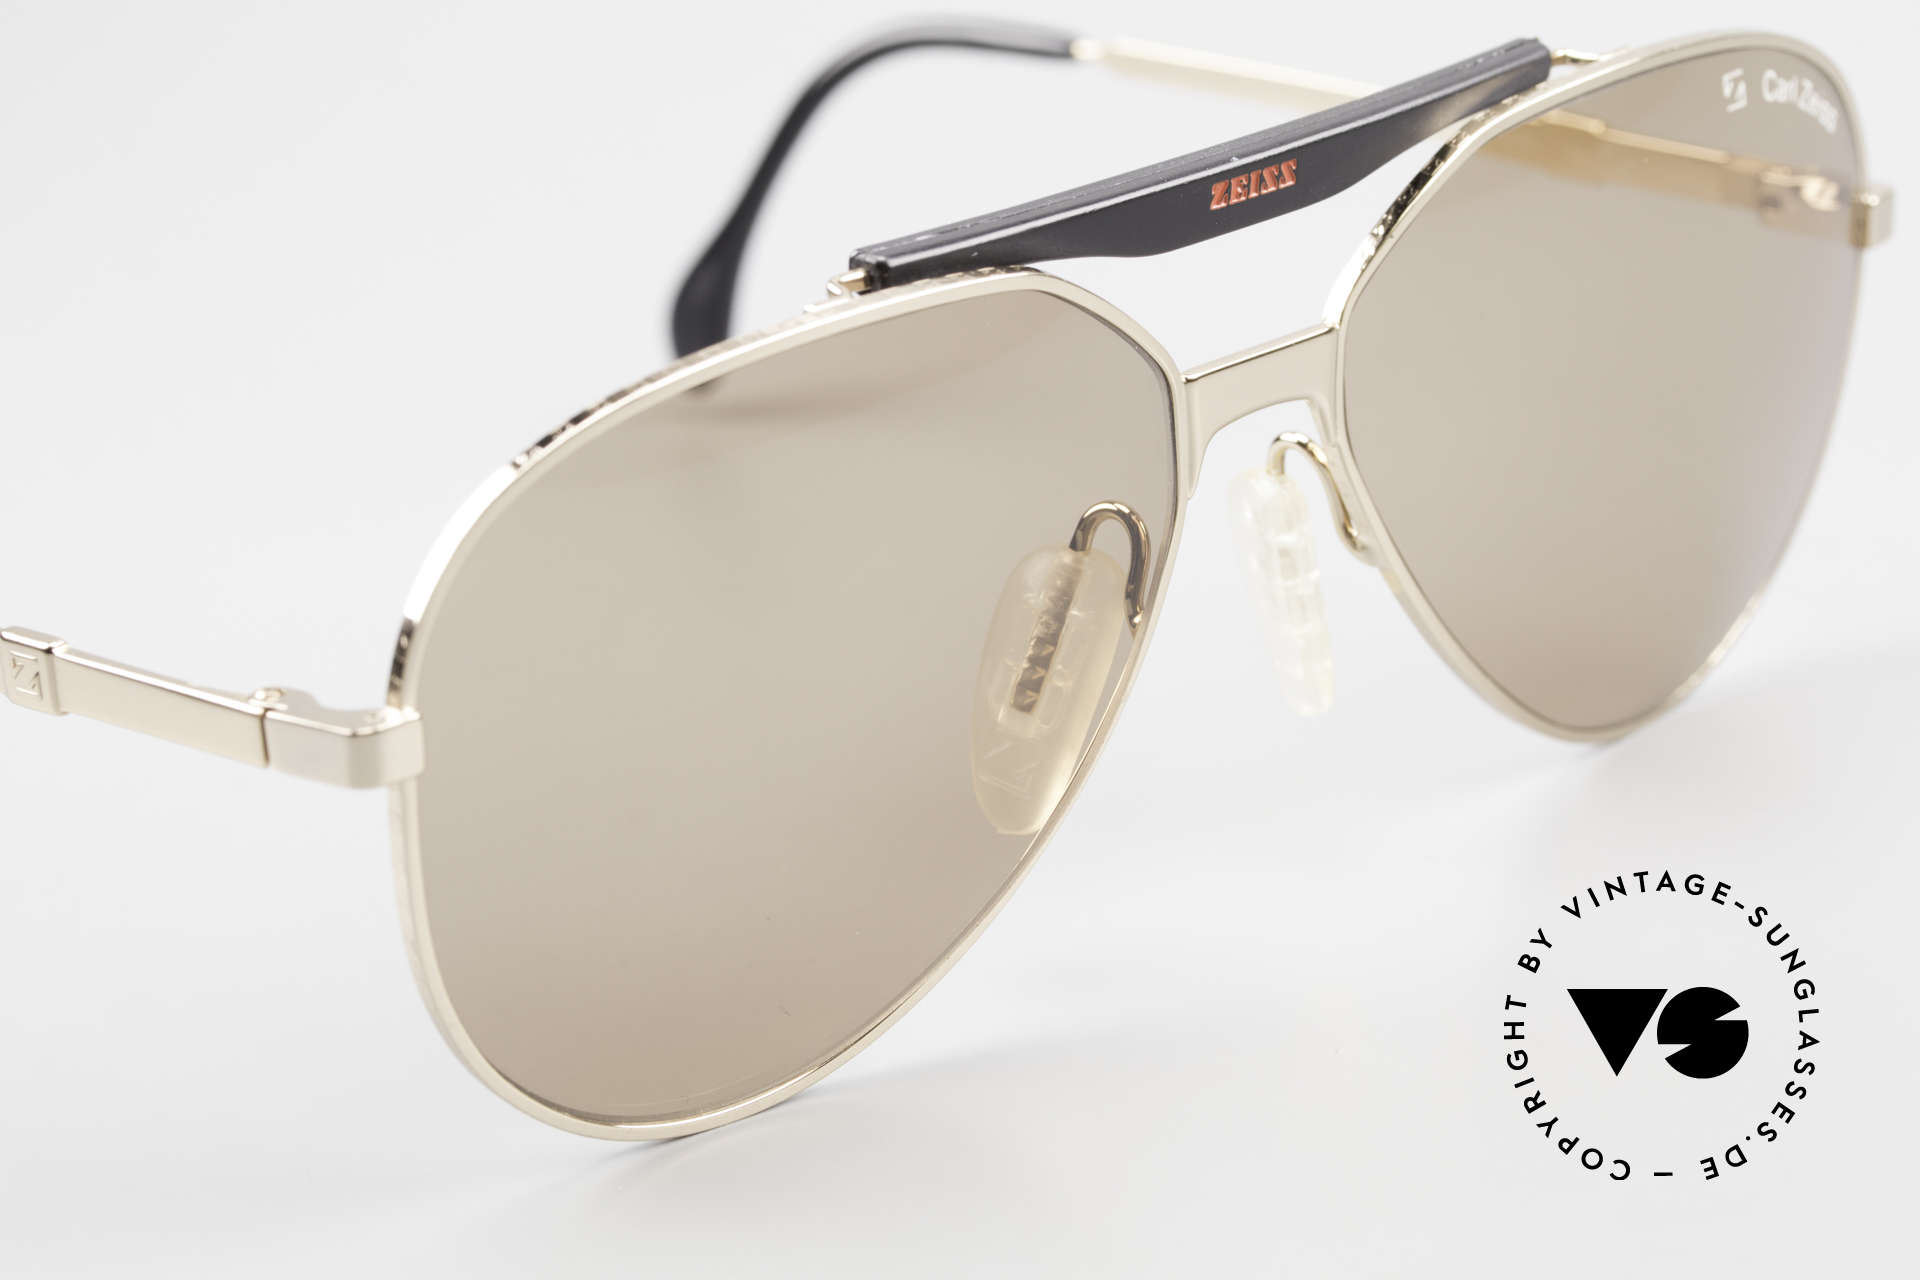 Zeiss 9931 Premium Vintage Sunglasses, flexible spring hinges for a perfect wearing comfort, Made for Men